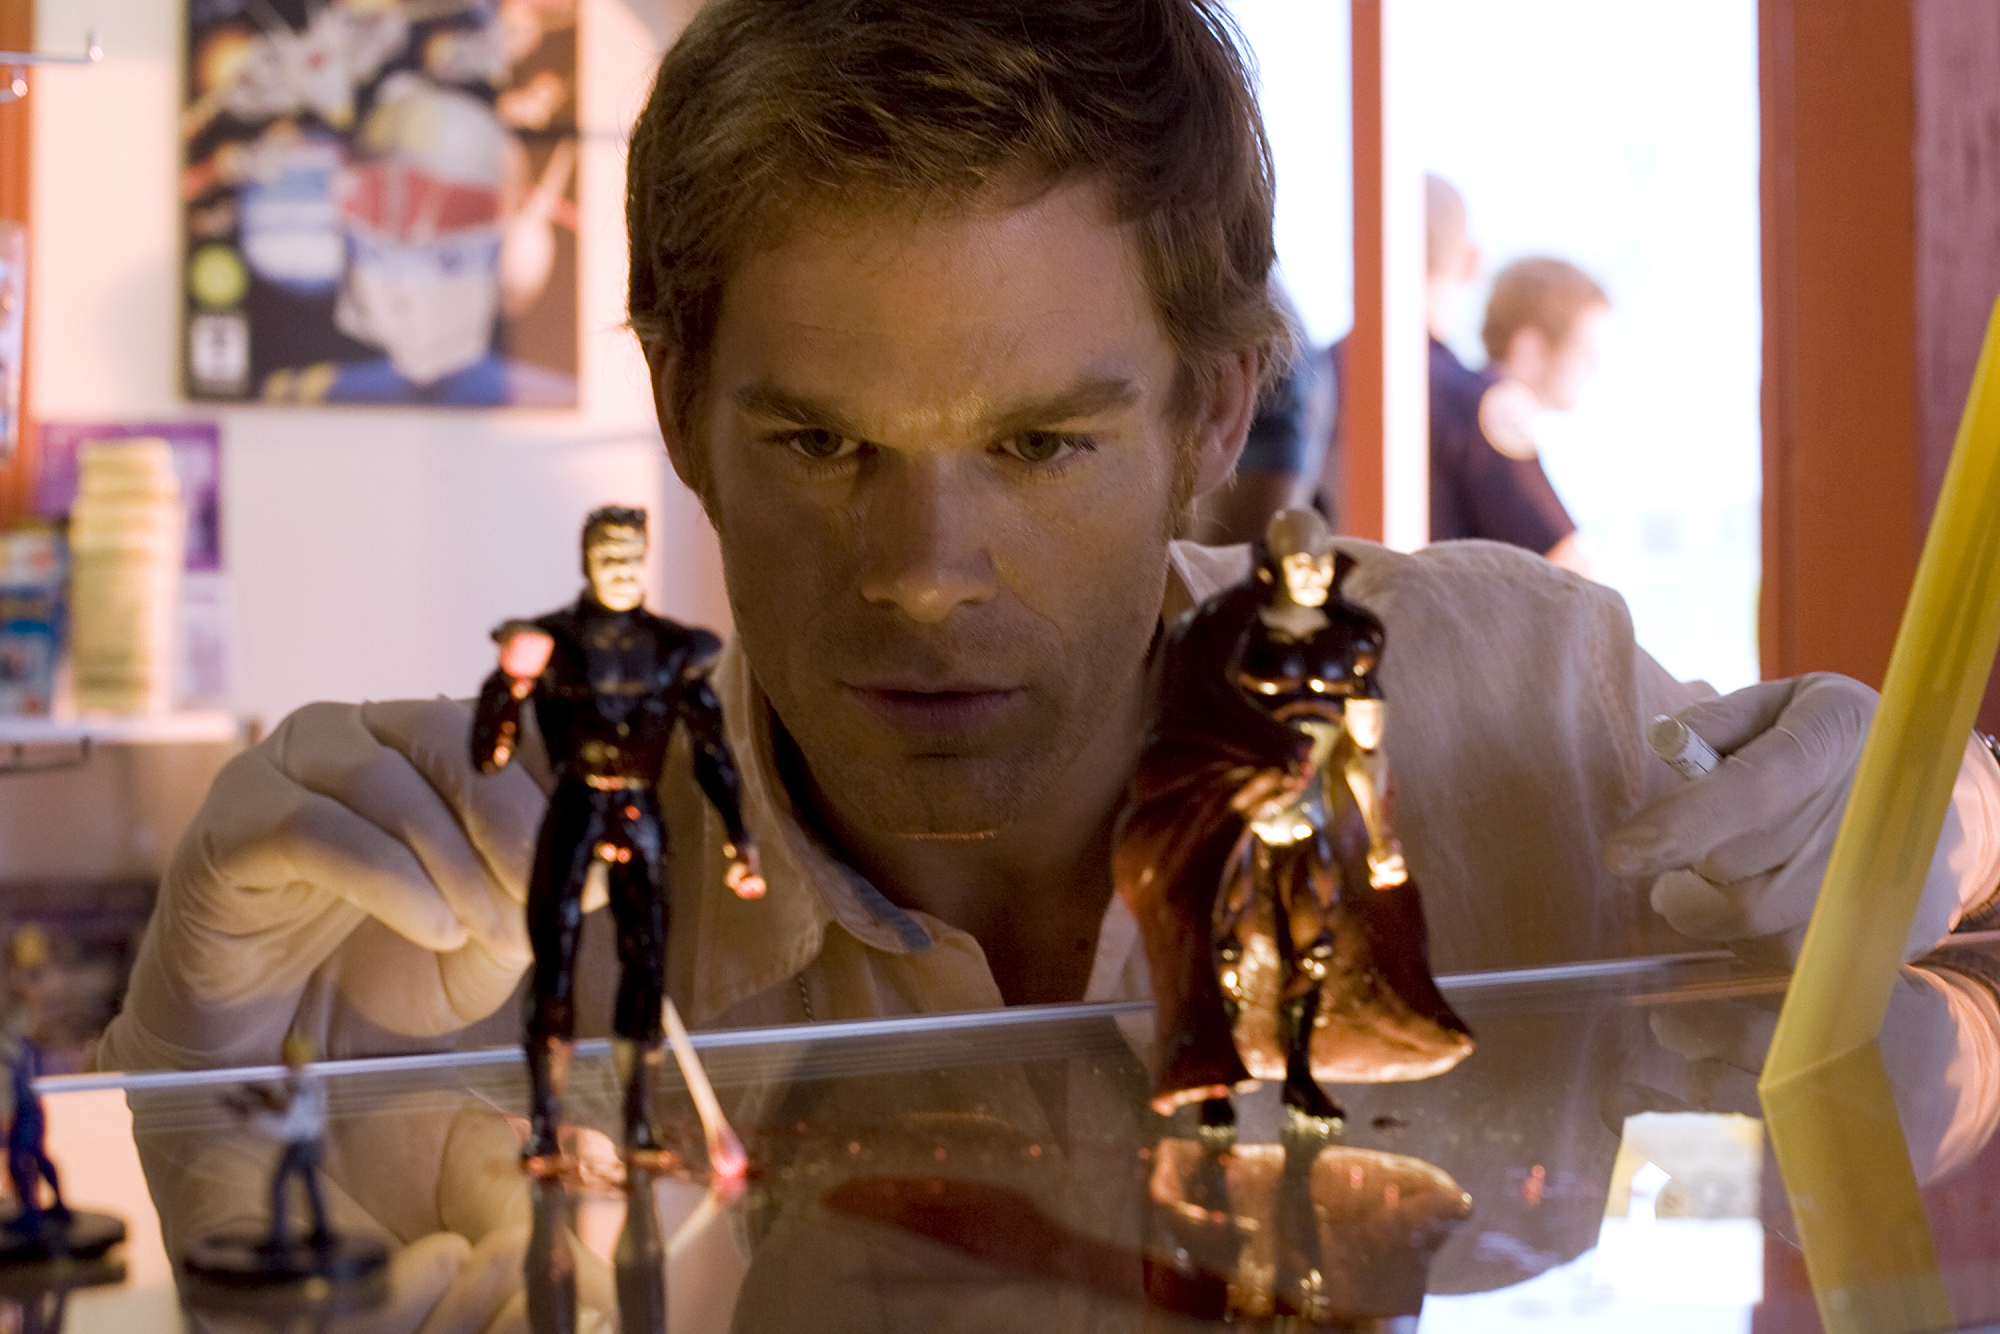 DEXTER (Season 2) - YEAR IN REVIEW